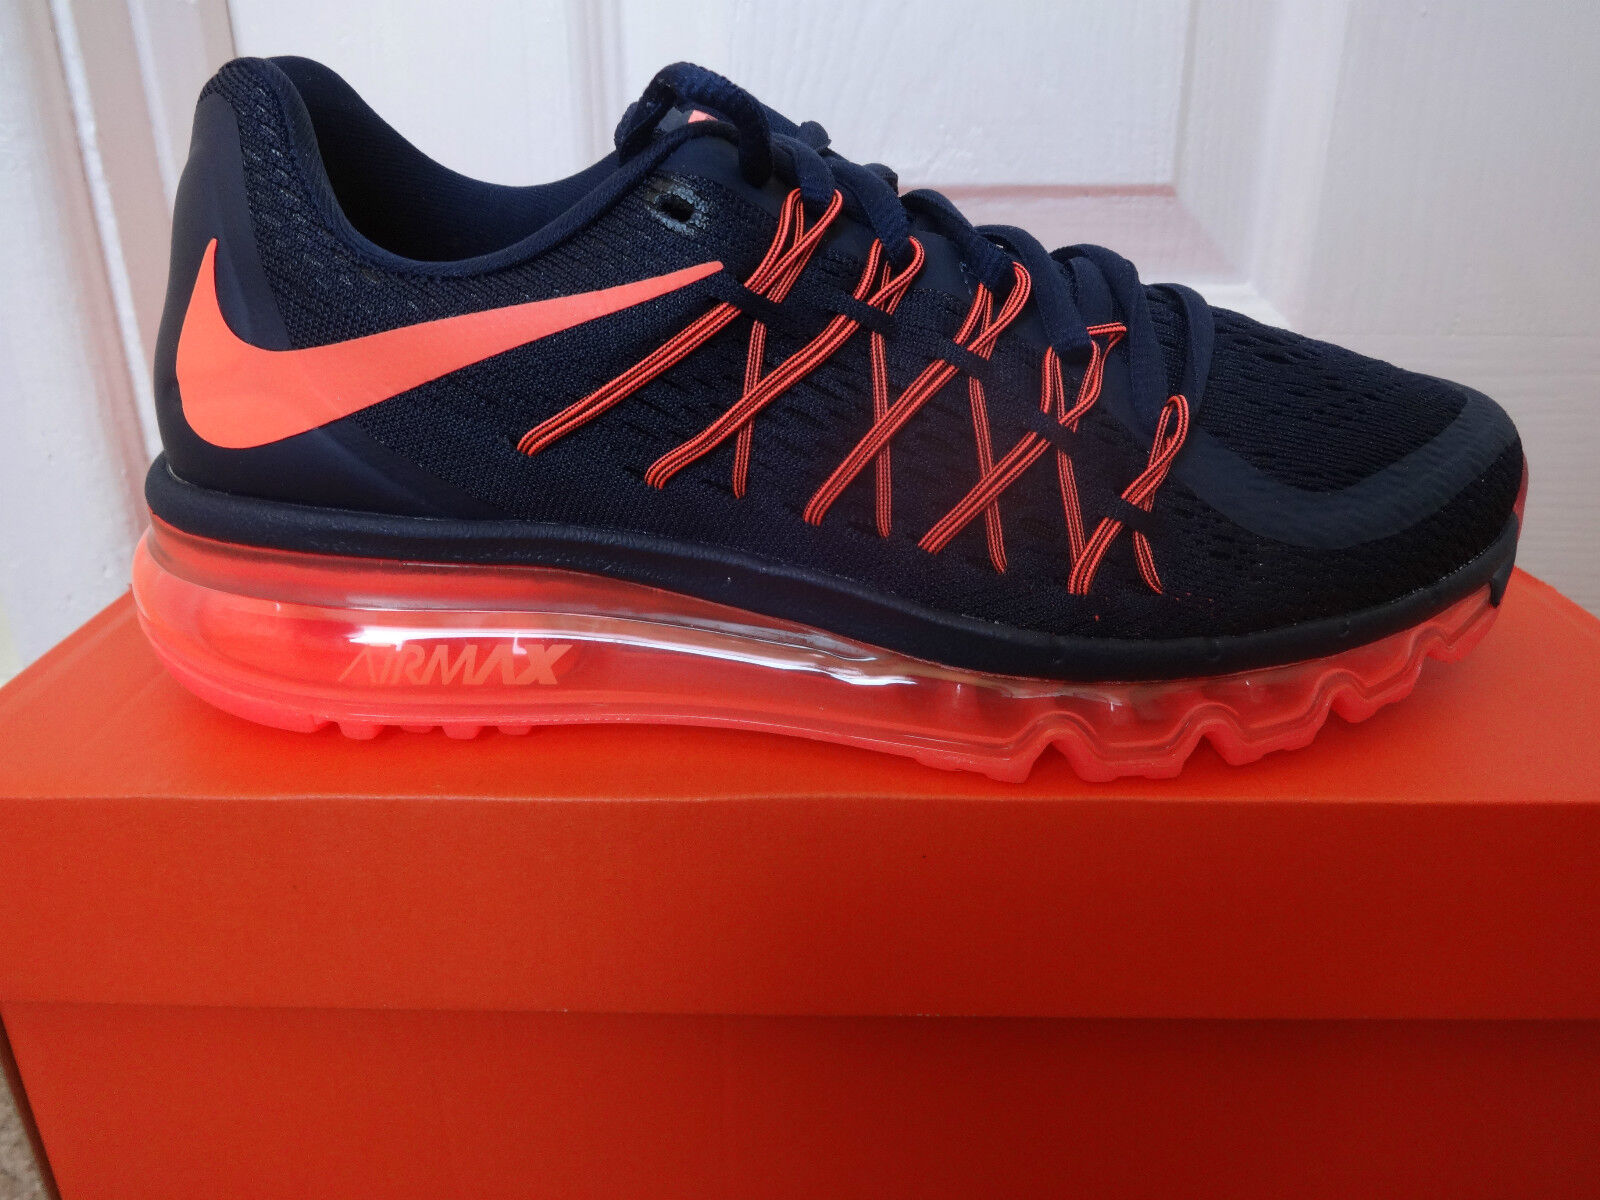 Nike Air Max 2015 Wmns Baskets Baskets 698903 408 UK 5 EU 38.5 US 7.5 Neuf + Boîte